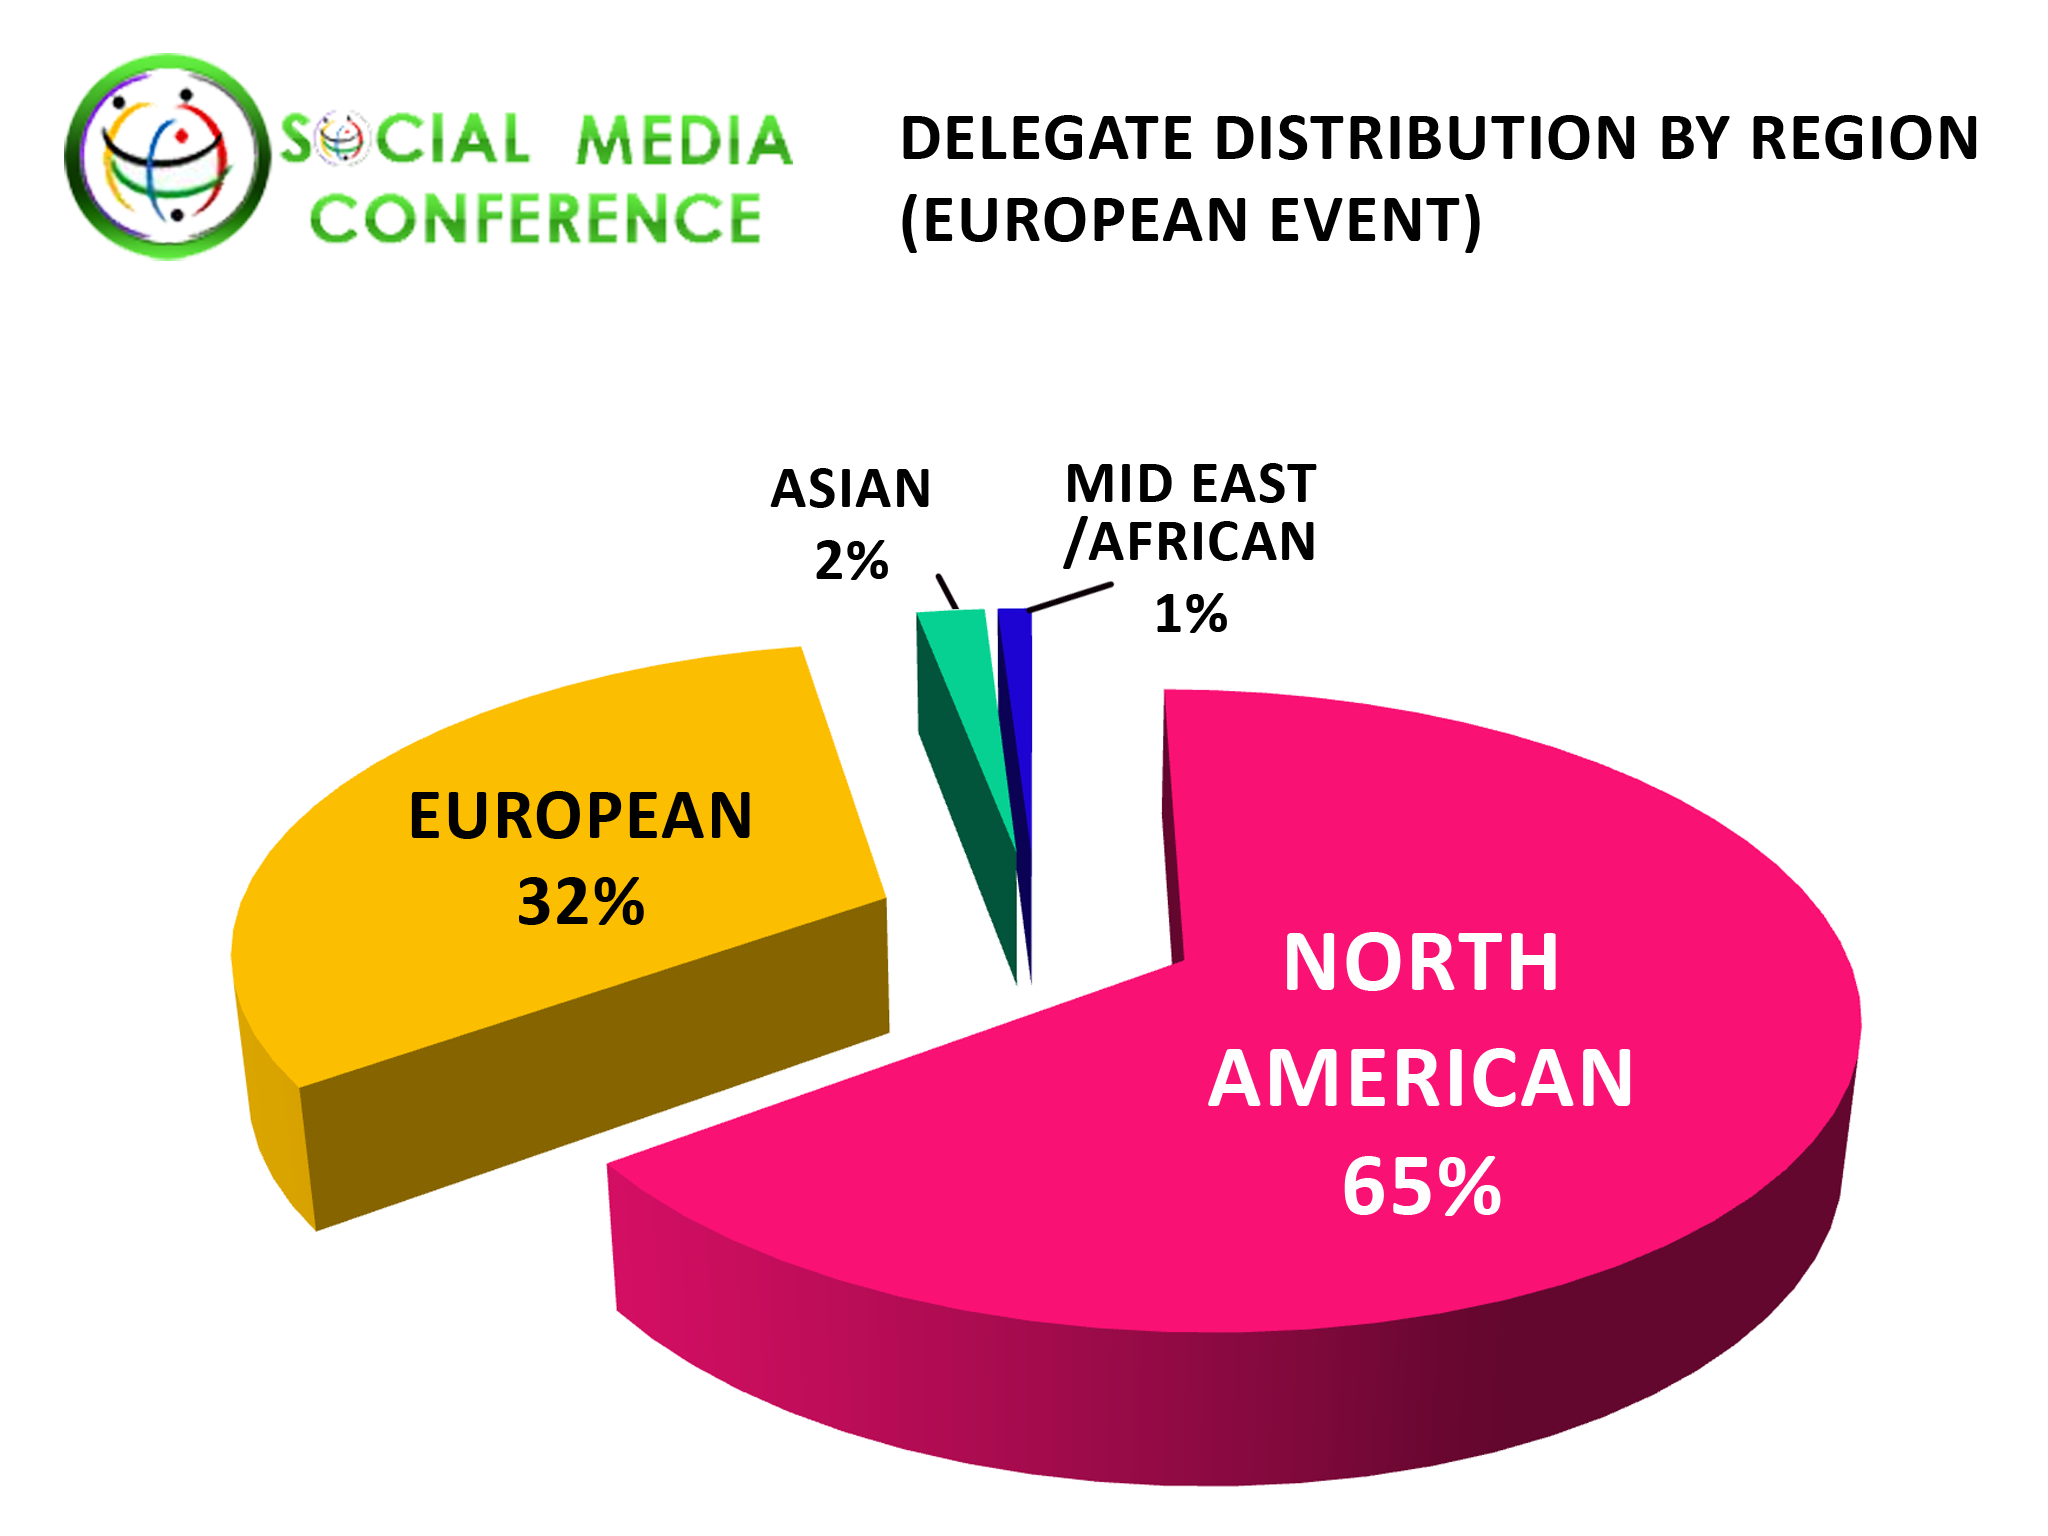 Social Networking Conference Regional Delegate Distribution: Europe